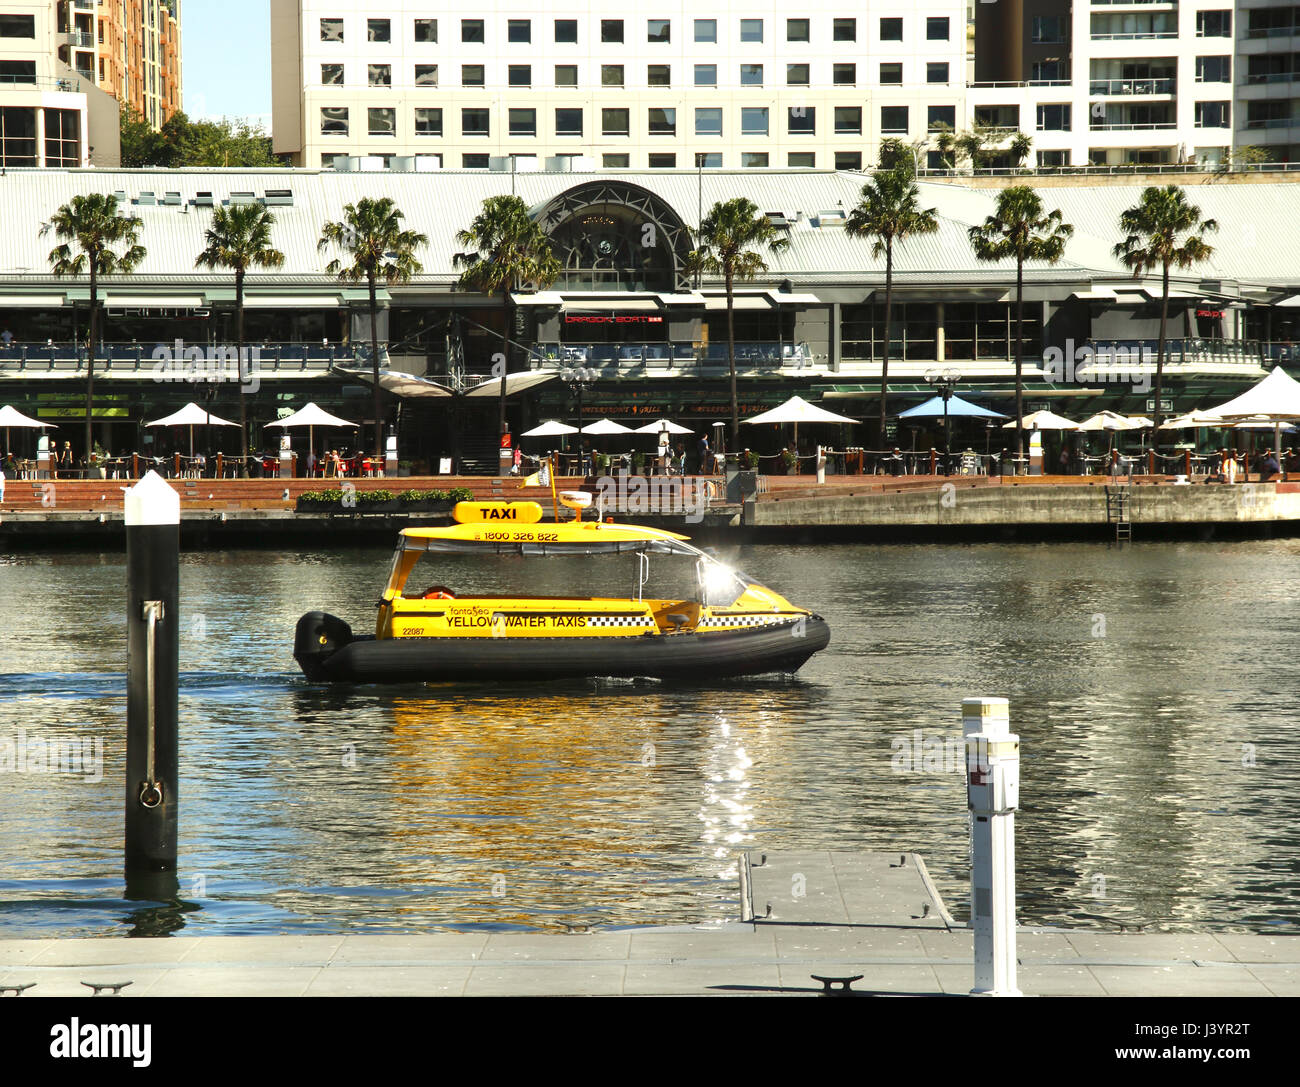 A water taxi in Darling Harbour, Sydney Harbour, Australia - Stock Image